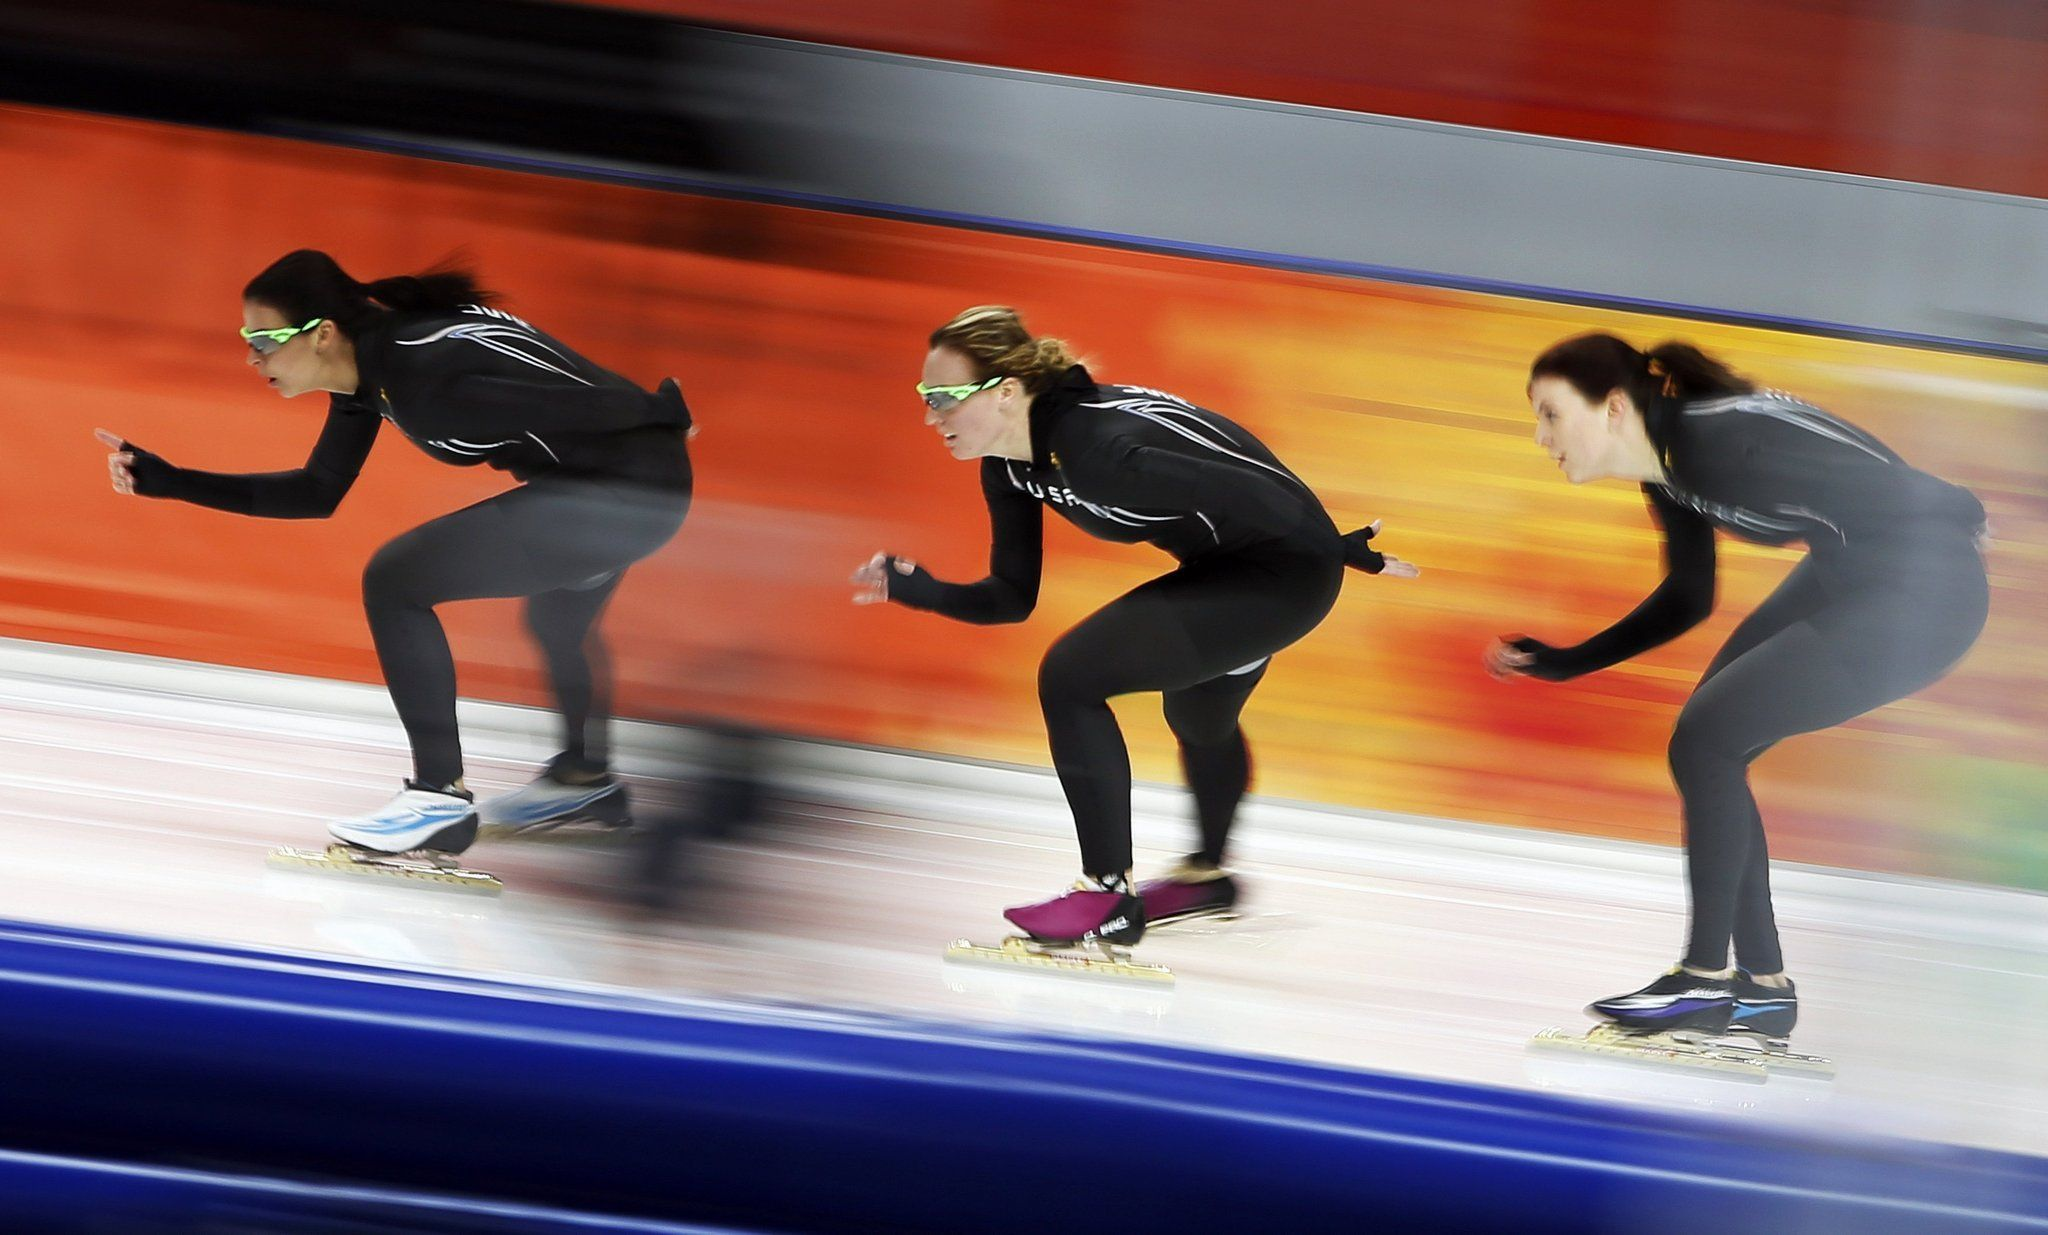 Aerospace firm Sigma Space Corp. has joined fellow Maryland companies  Under Armour  and  Lockheed Martin  in developing technology to help the U.S. Speedskating team at the Winter Olympics.